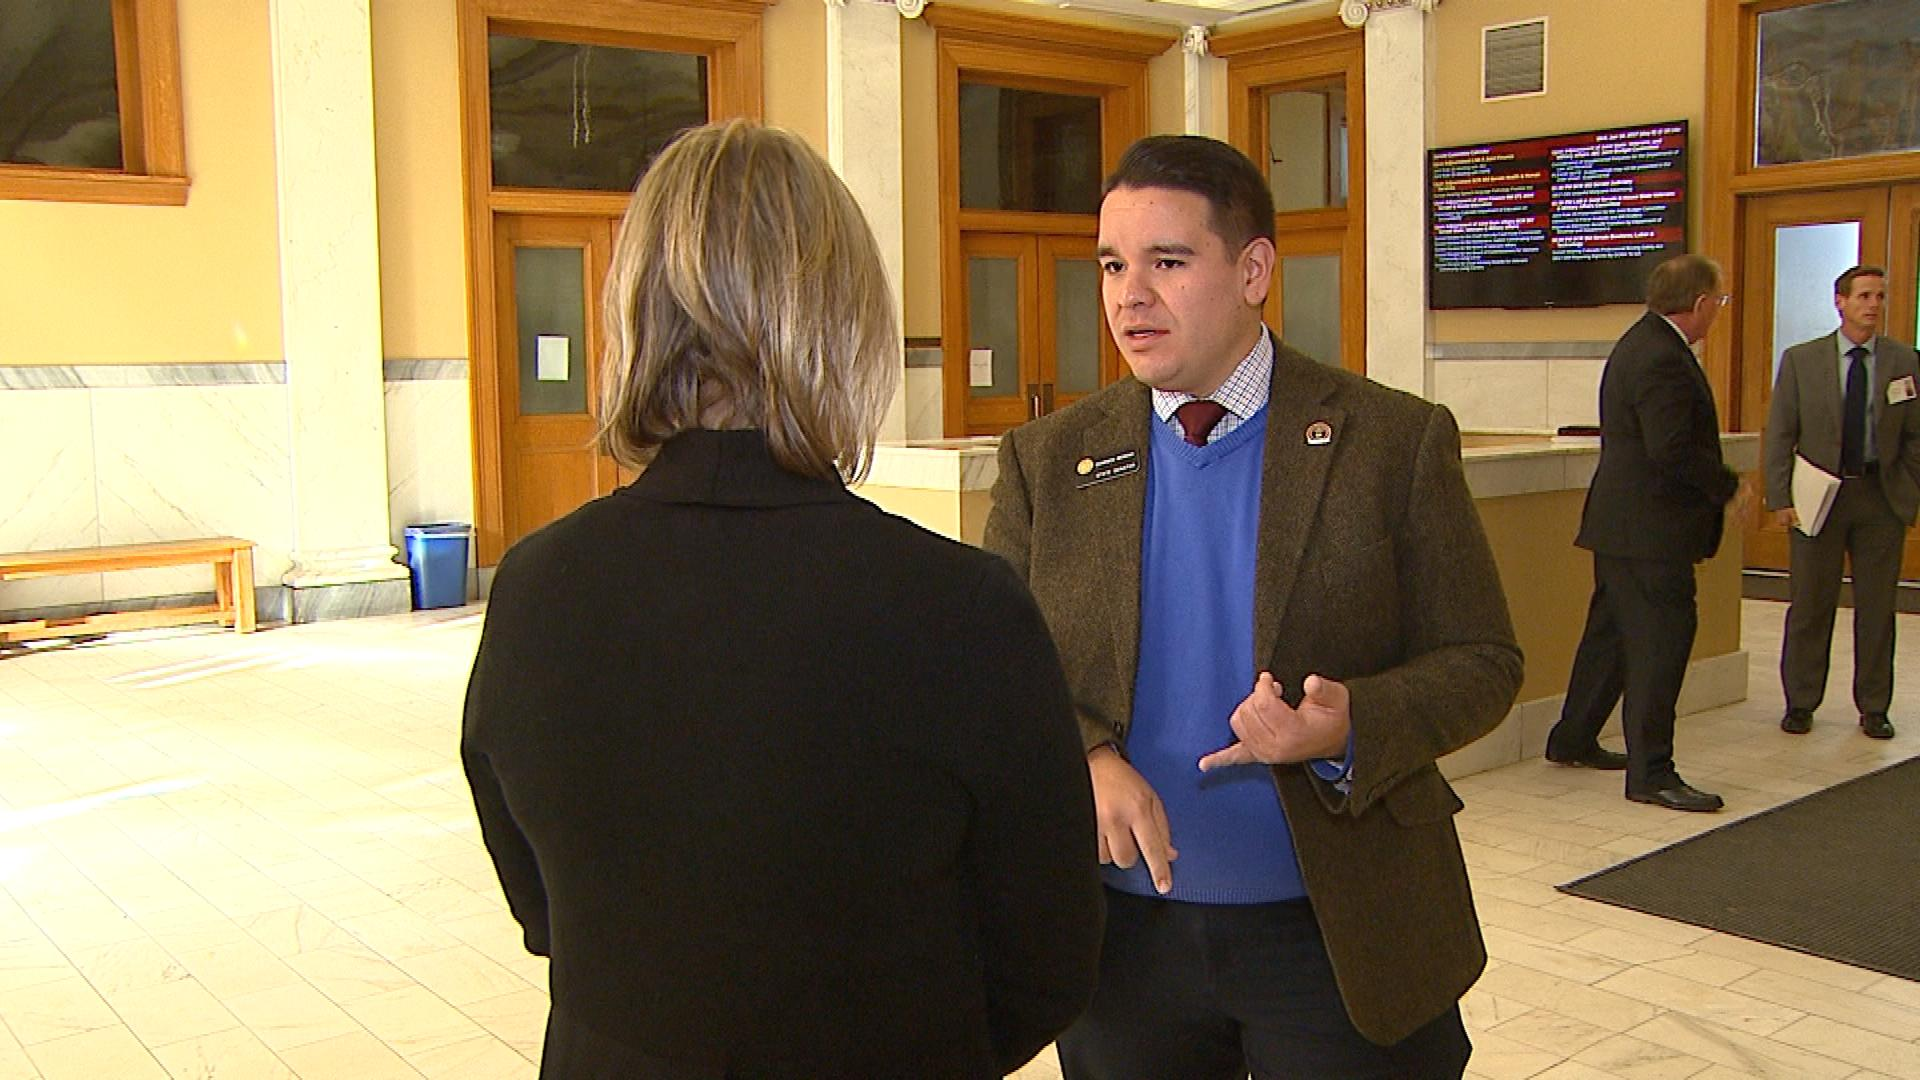 Sen. Dominick Moreno, D-Commerce City, is interviewed by CBS4's Shaun Boyd (credit: CBS)